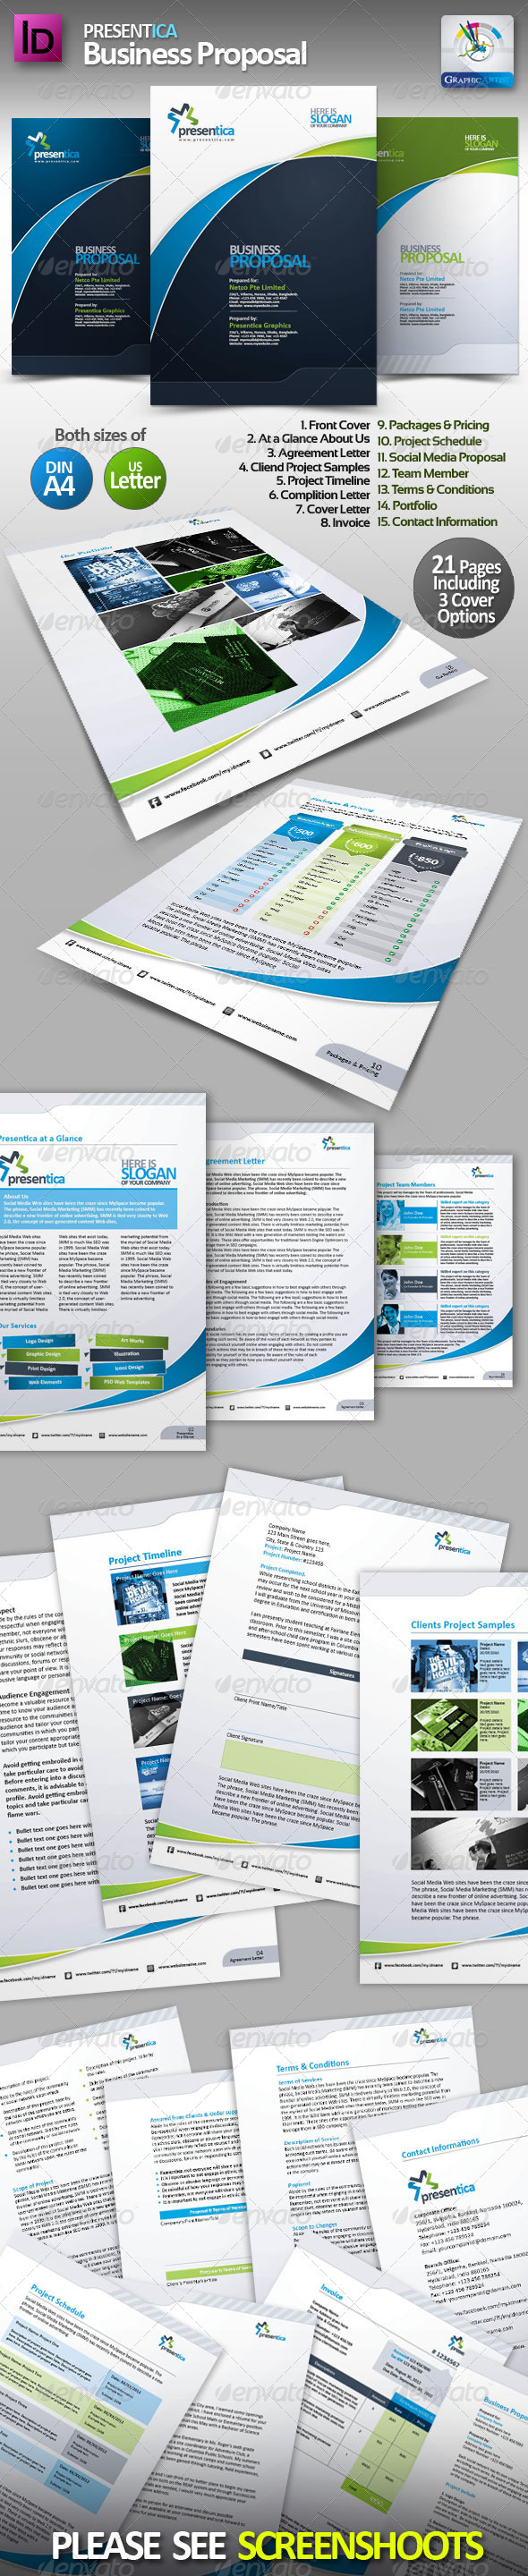 Presentica Business Proposal - Proposals & Invoices Stationery